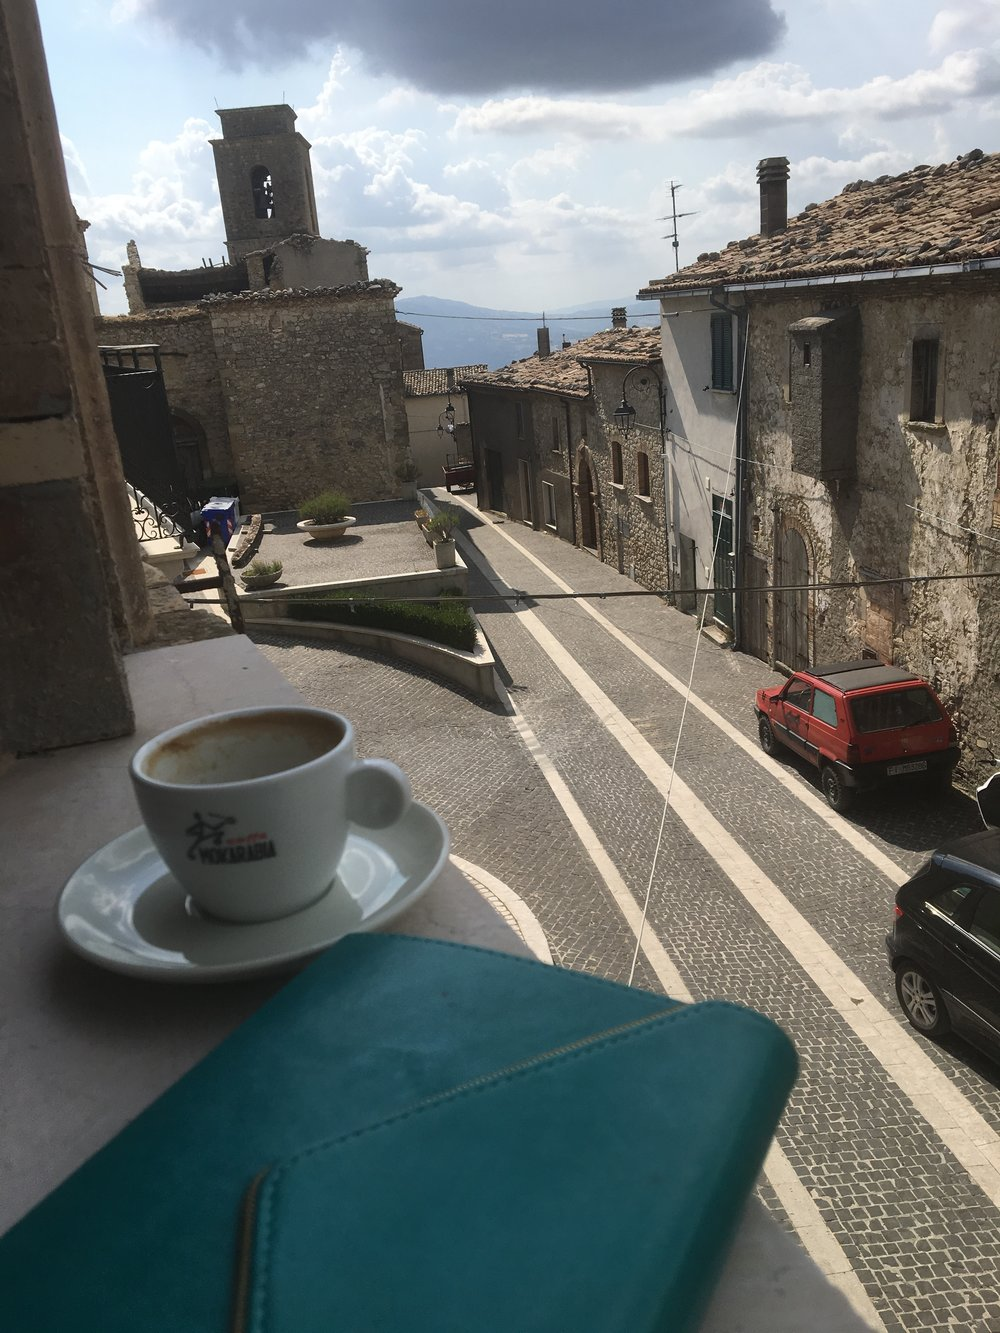 Morning Journal Time in Italy